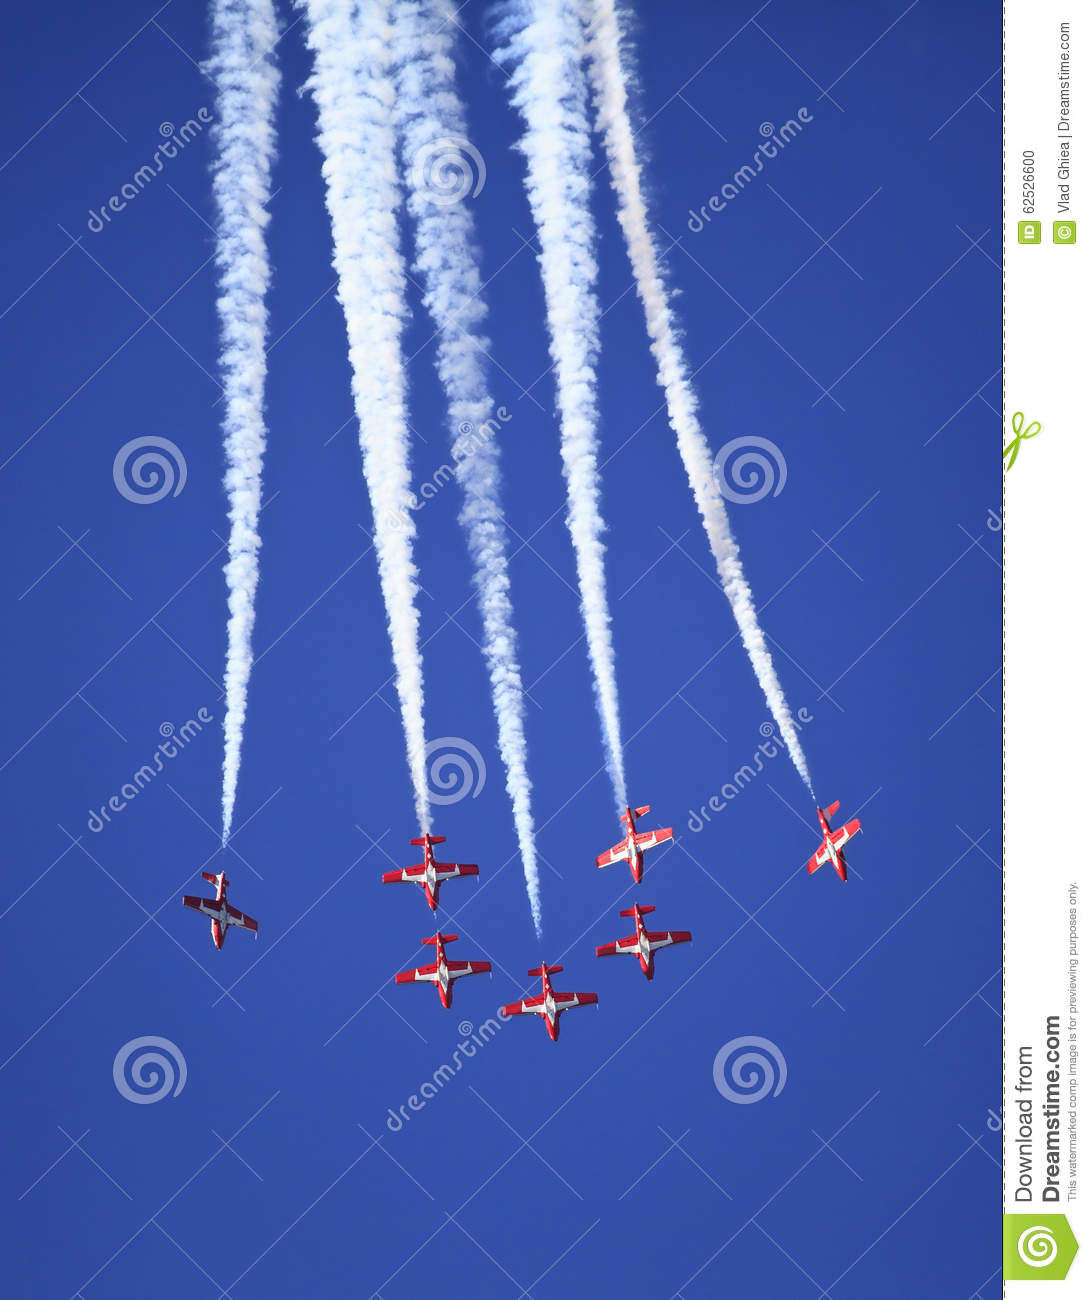 Display by the Snowbirds team at the Air Show event